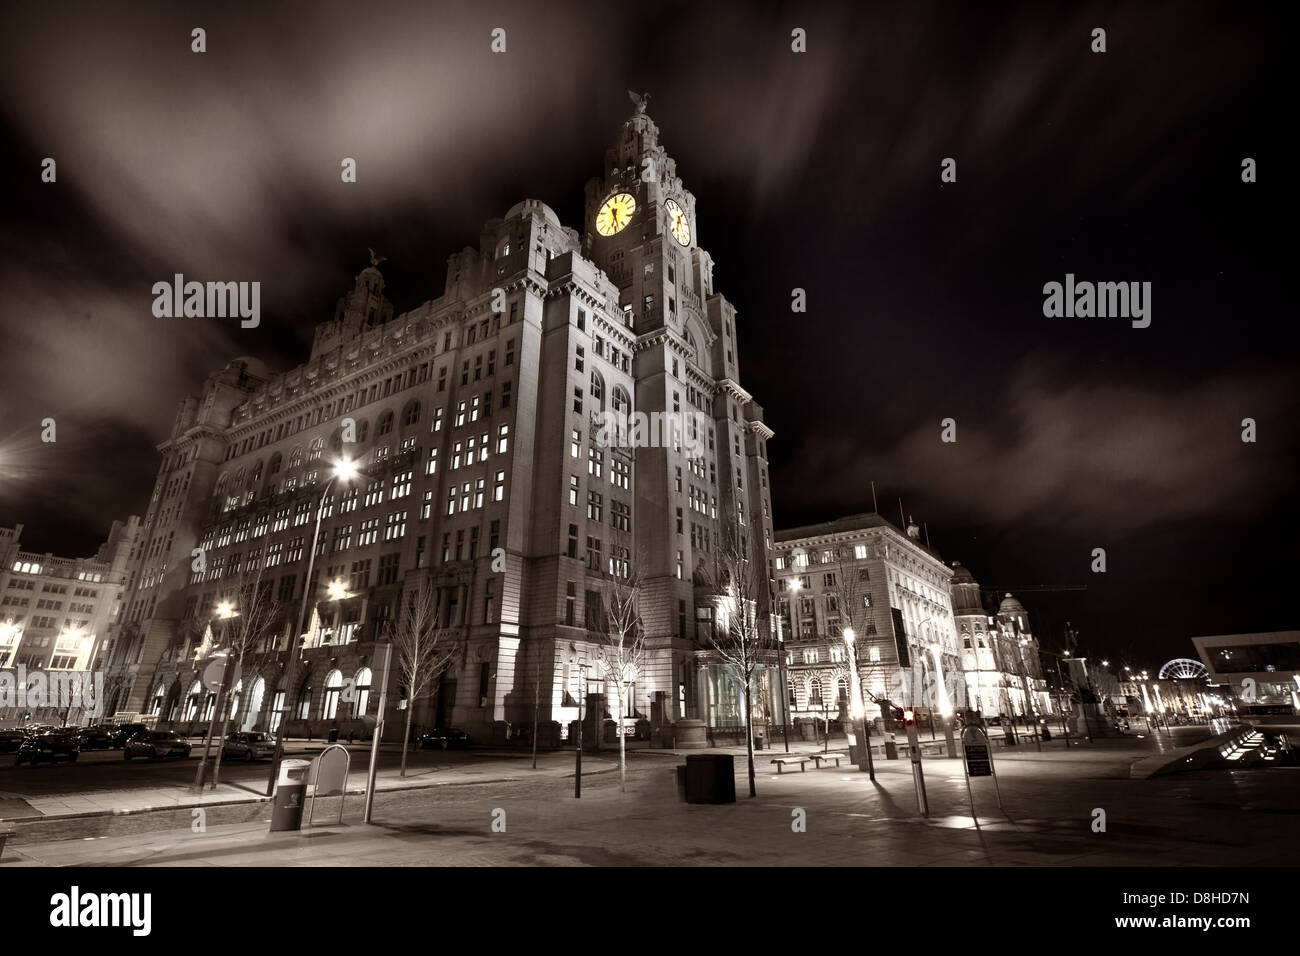 dock,front,at,the,Pier,Head,docks,Mersey,harbour,co,company,Merseyside,Lancs,liverpool,England,NW,north,west,english,night,blue,hour,bluehour,city,centre,liver,building,Cunard,architecture,museum,of,nightshot,famous,historic,landmarks,river,riverside,Maritime,Mercantile,City,UNESCO,World,Heritage,gotonysmith,interesting,image,landmark,site,wide,pano,shot,landscape,tourist,visit,visitor,tourism,travel,Royal,Liver,Friendly,Society,Line,shipping,company,by,clock,selective,color,colour,Buy Pictures of,Buy Images Of